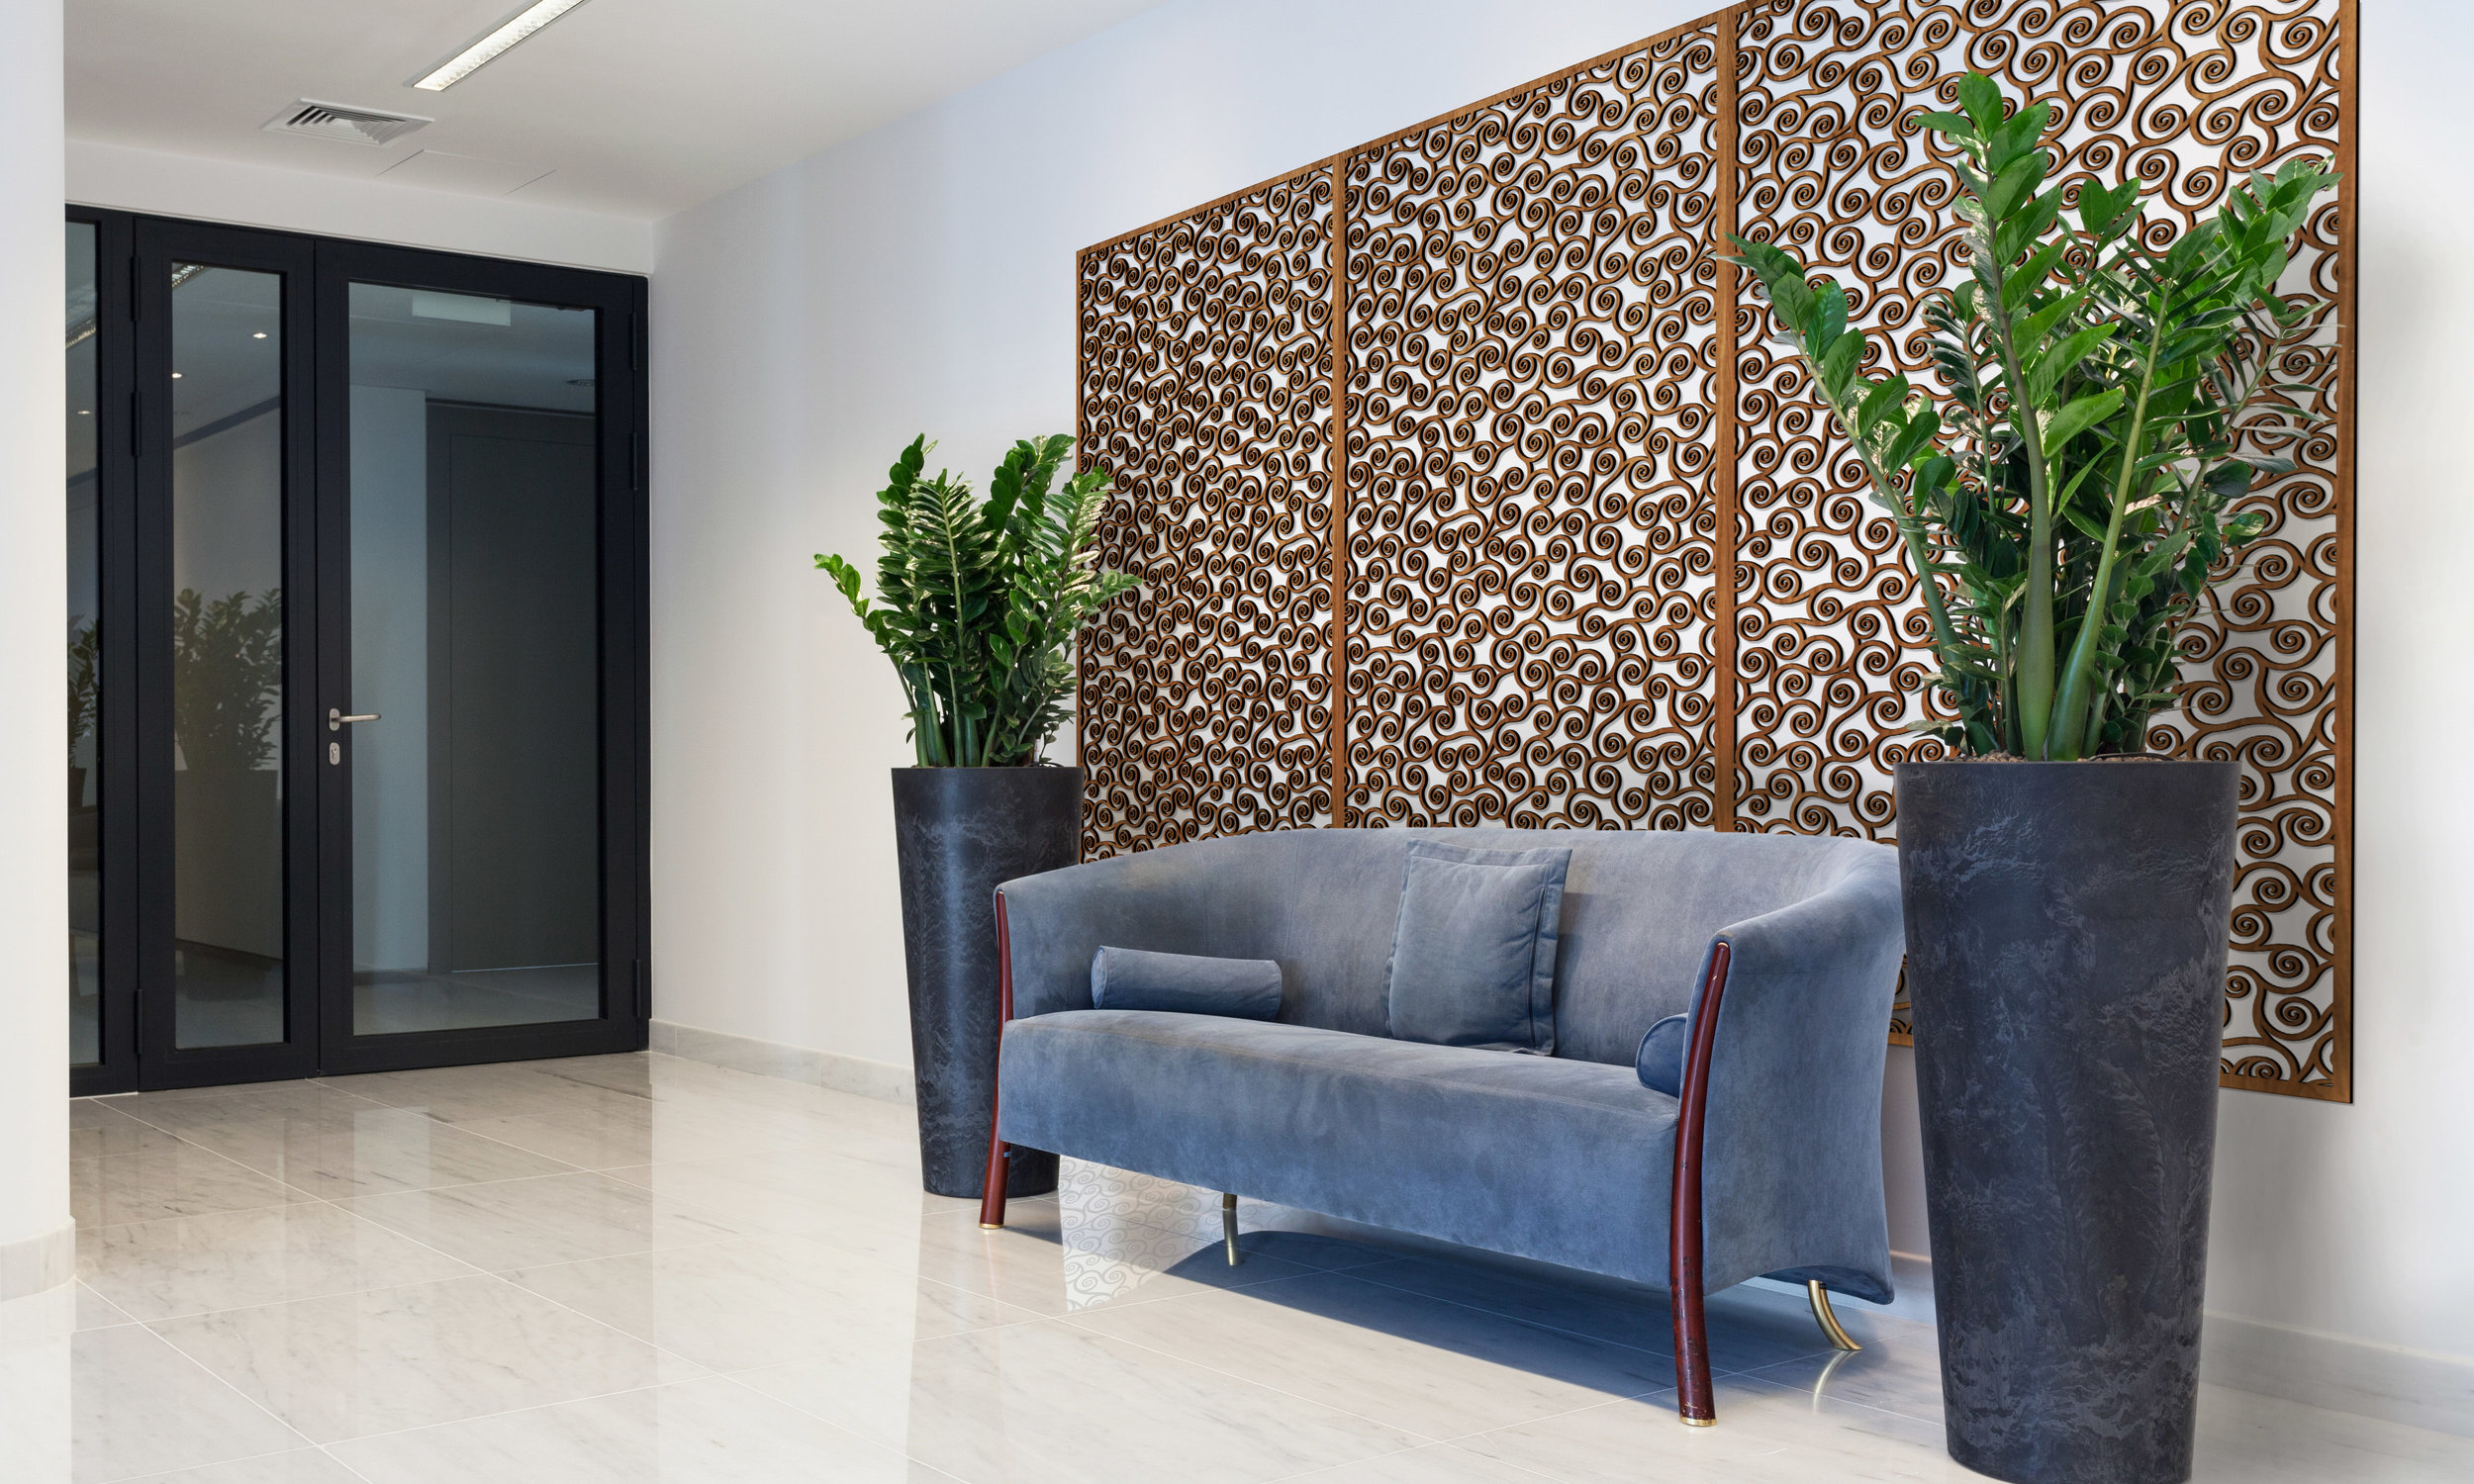 Installation Rendering A   Spirals 1 decorative office wall panel - shown in Cherry